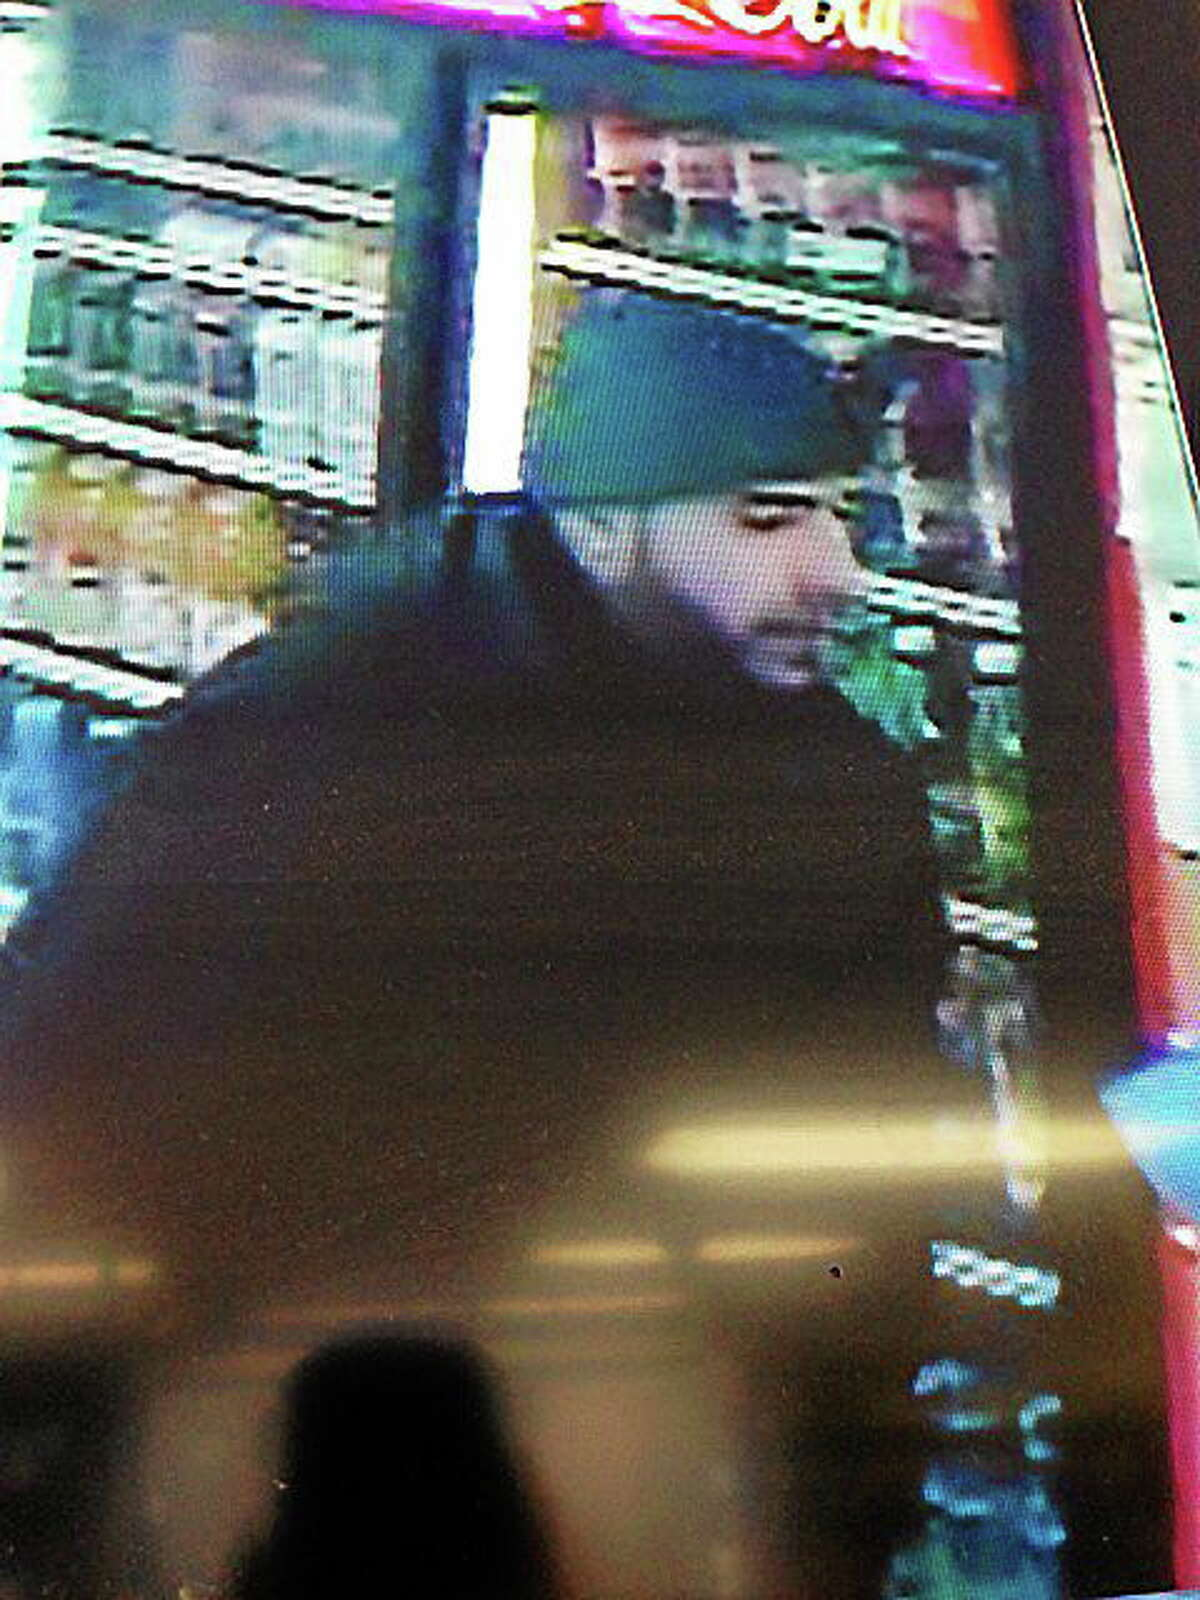 Video surveillance of a suspected counterfeiter. Provided by Cromwell Police